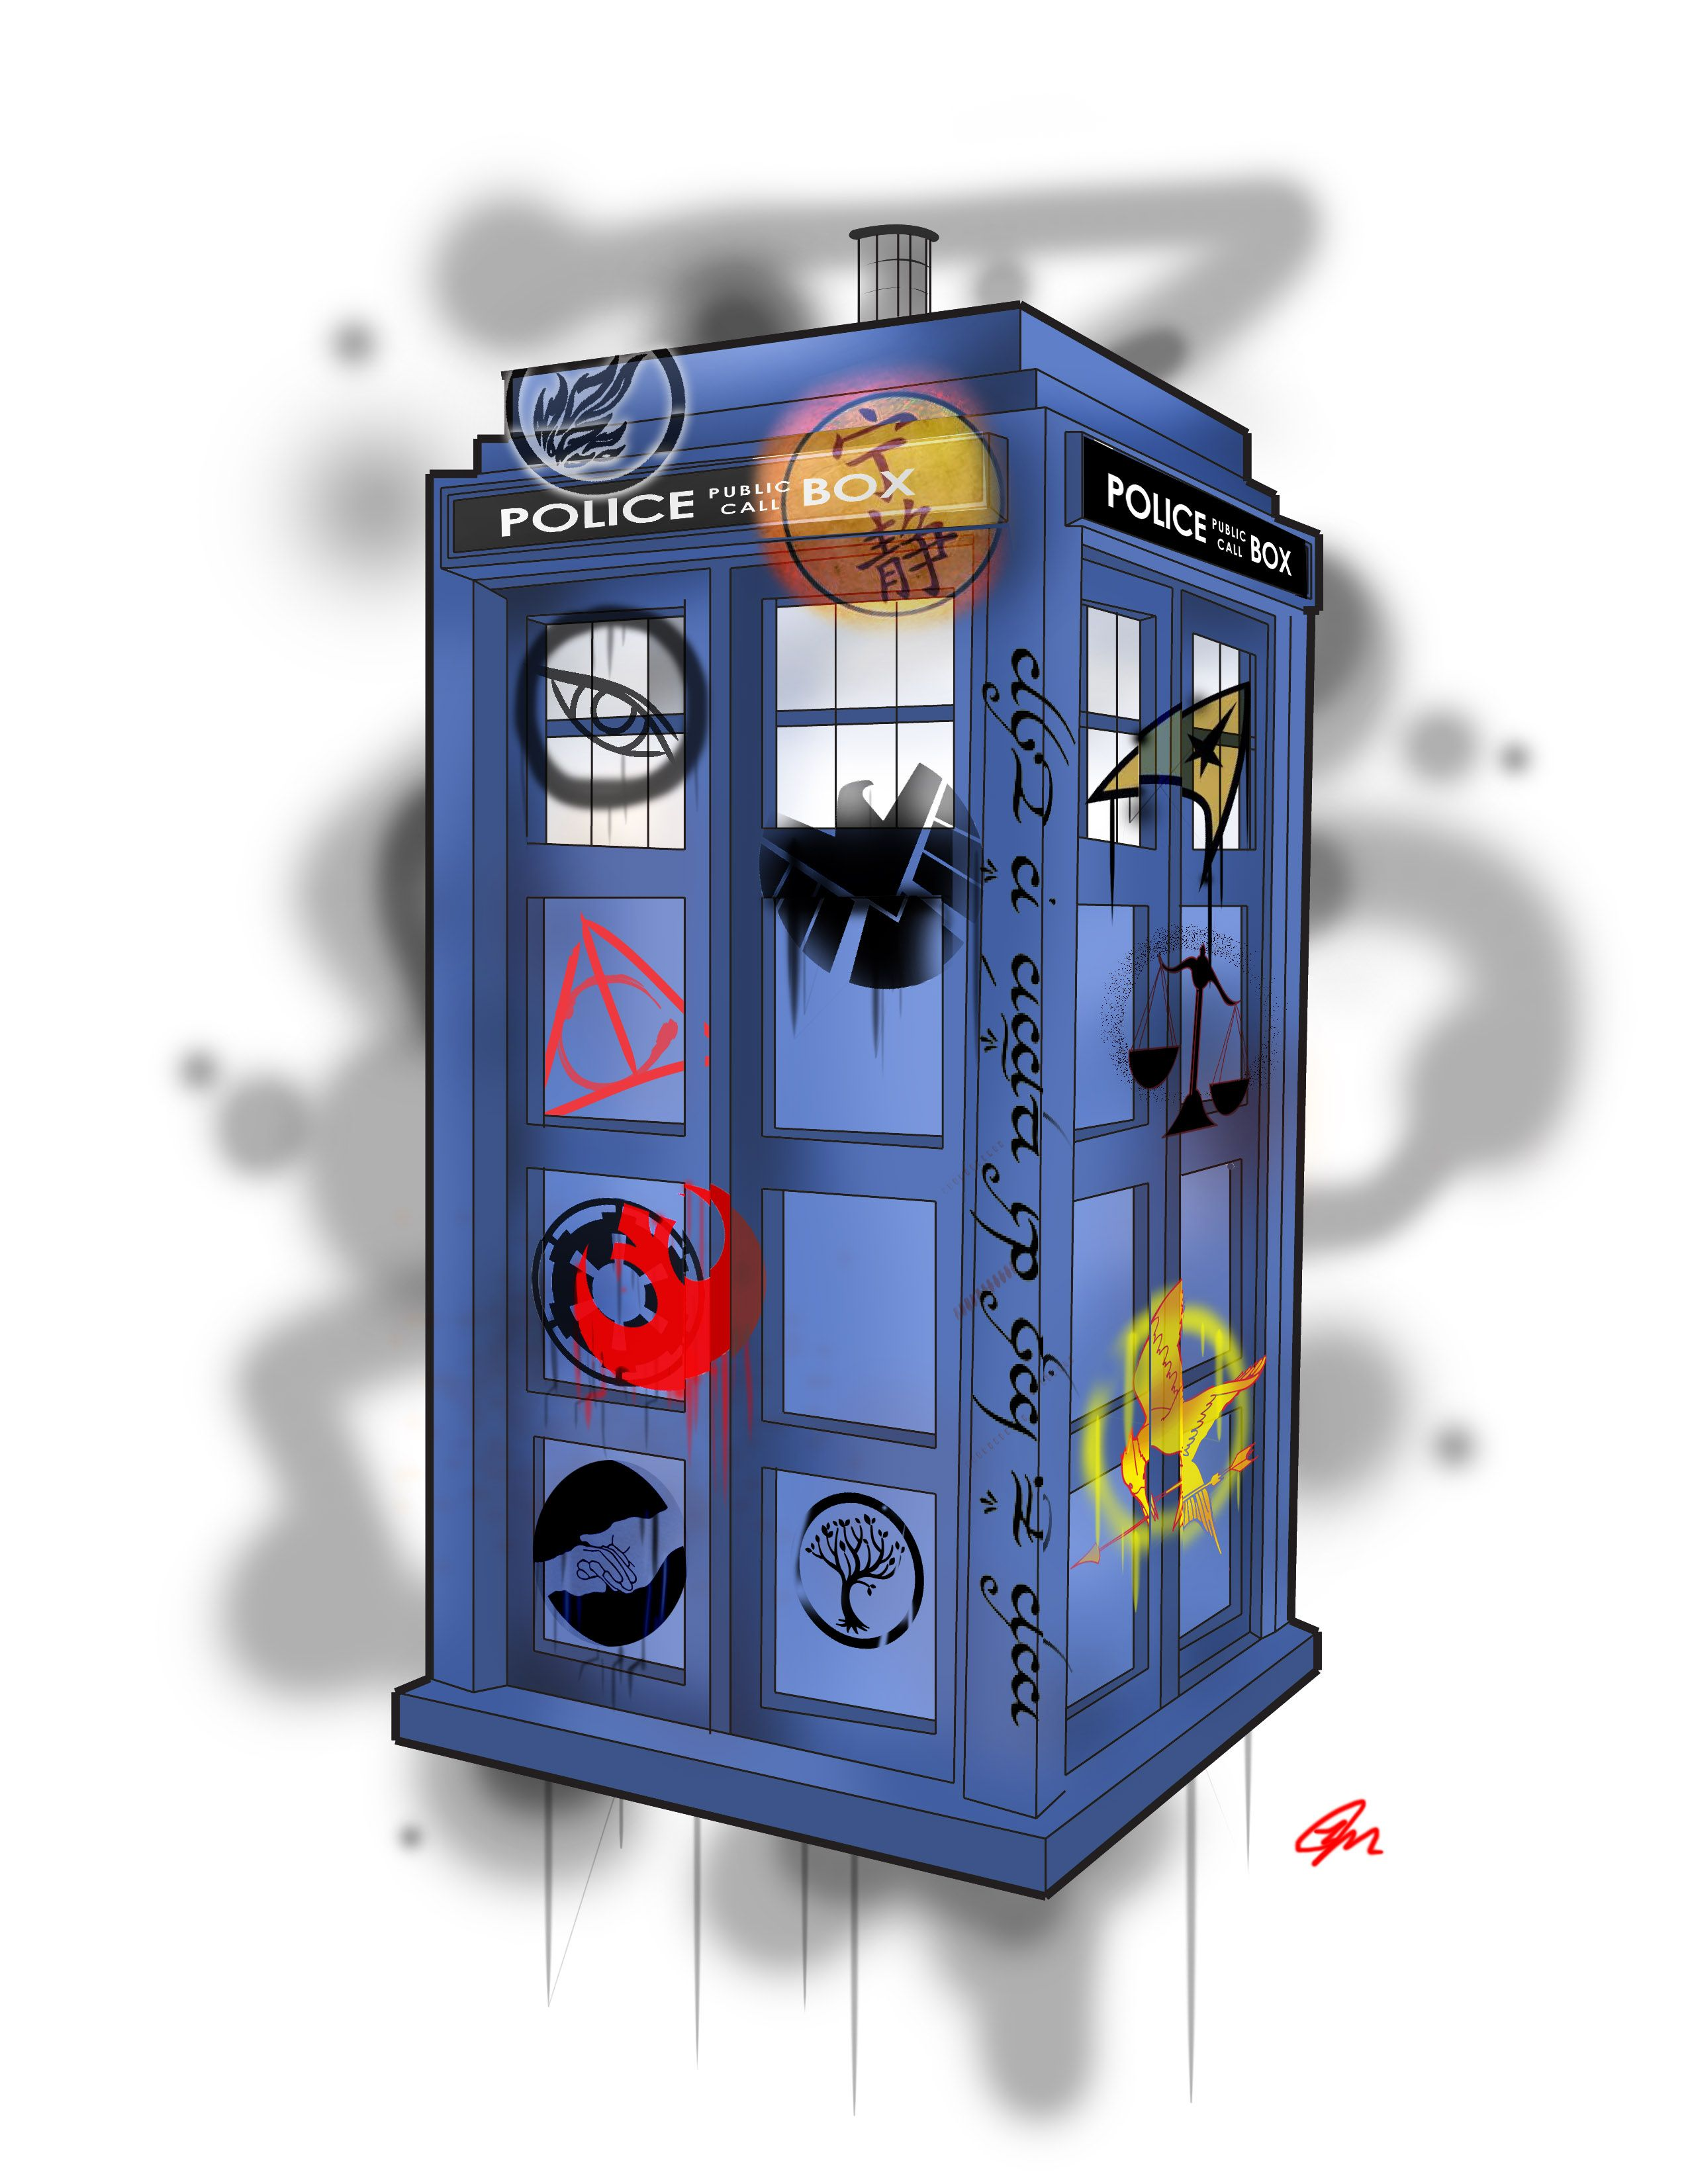 doctor who tattoo star wars divergent to kill a mockingbird doctor who tattoo star wars divergent to kill a mockingbird star trek abnigation police call box elvish lotr graffiti justice league